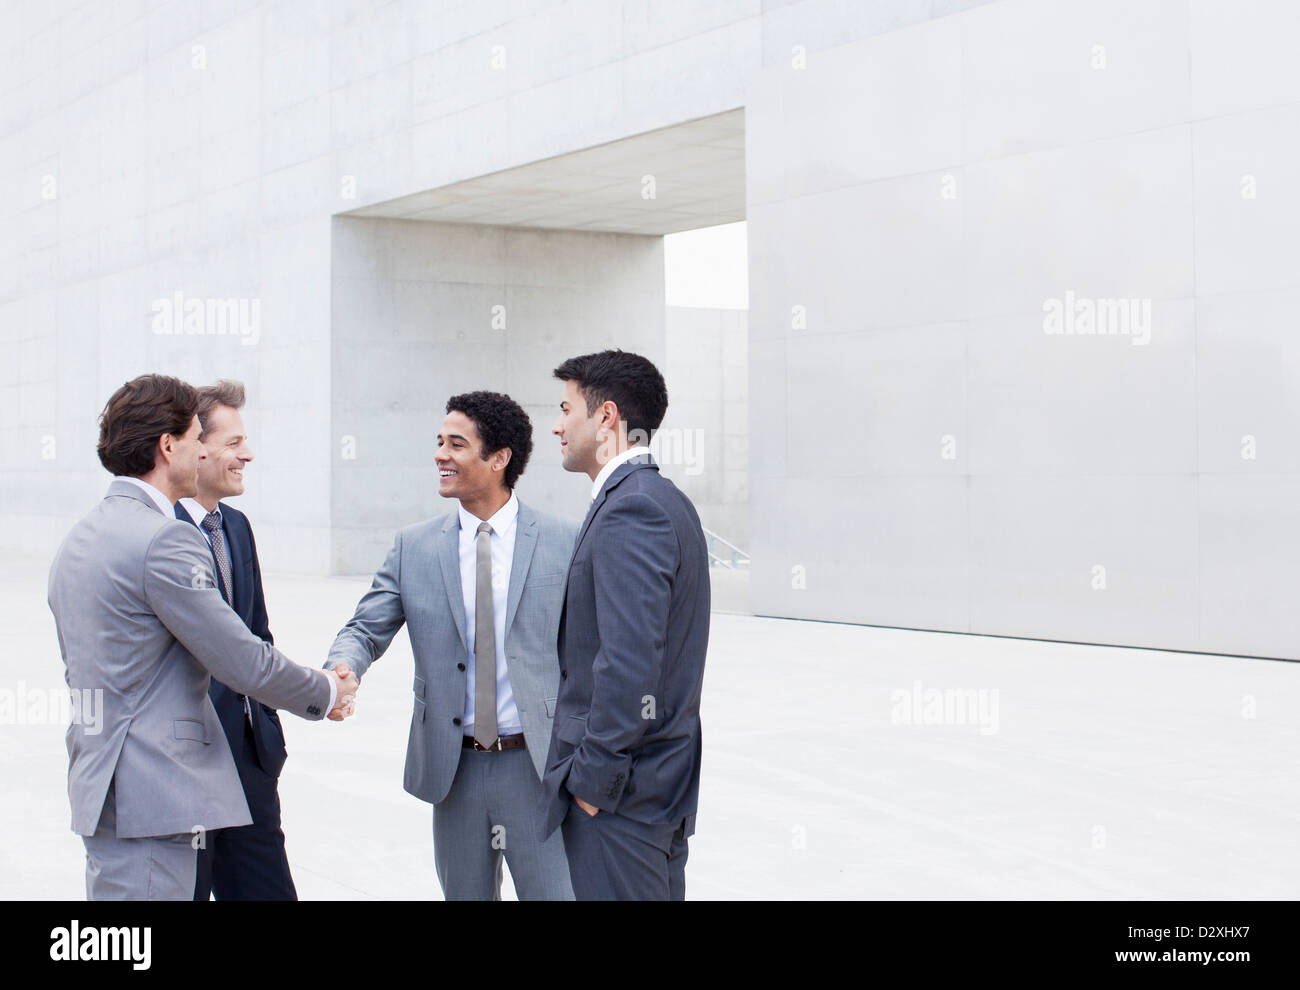 Smiling businessmen shaking hands outside cultural center - Stock Image